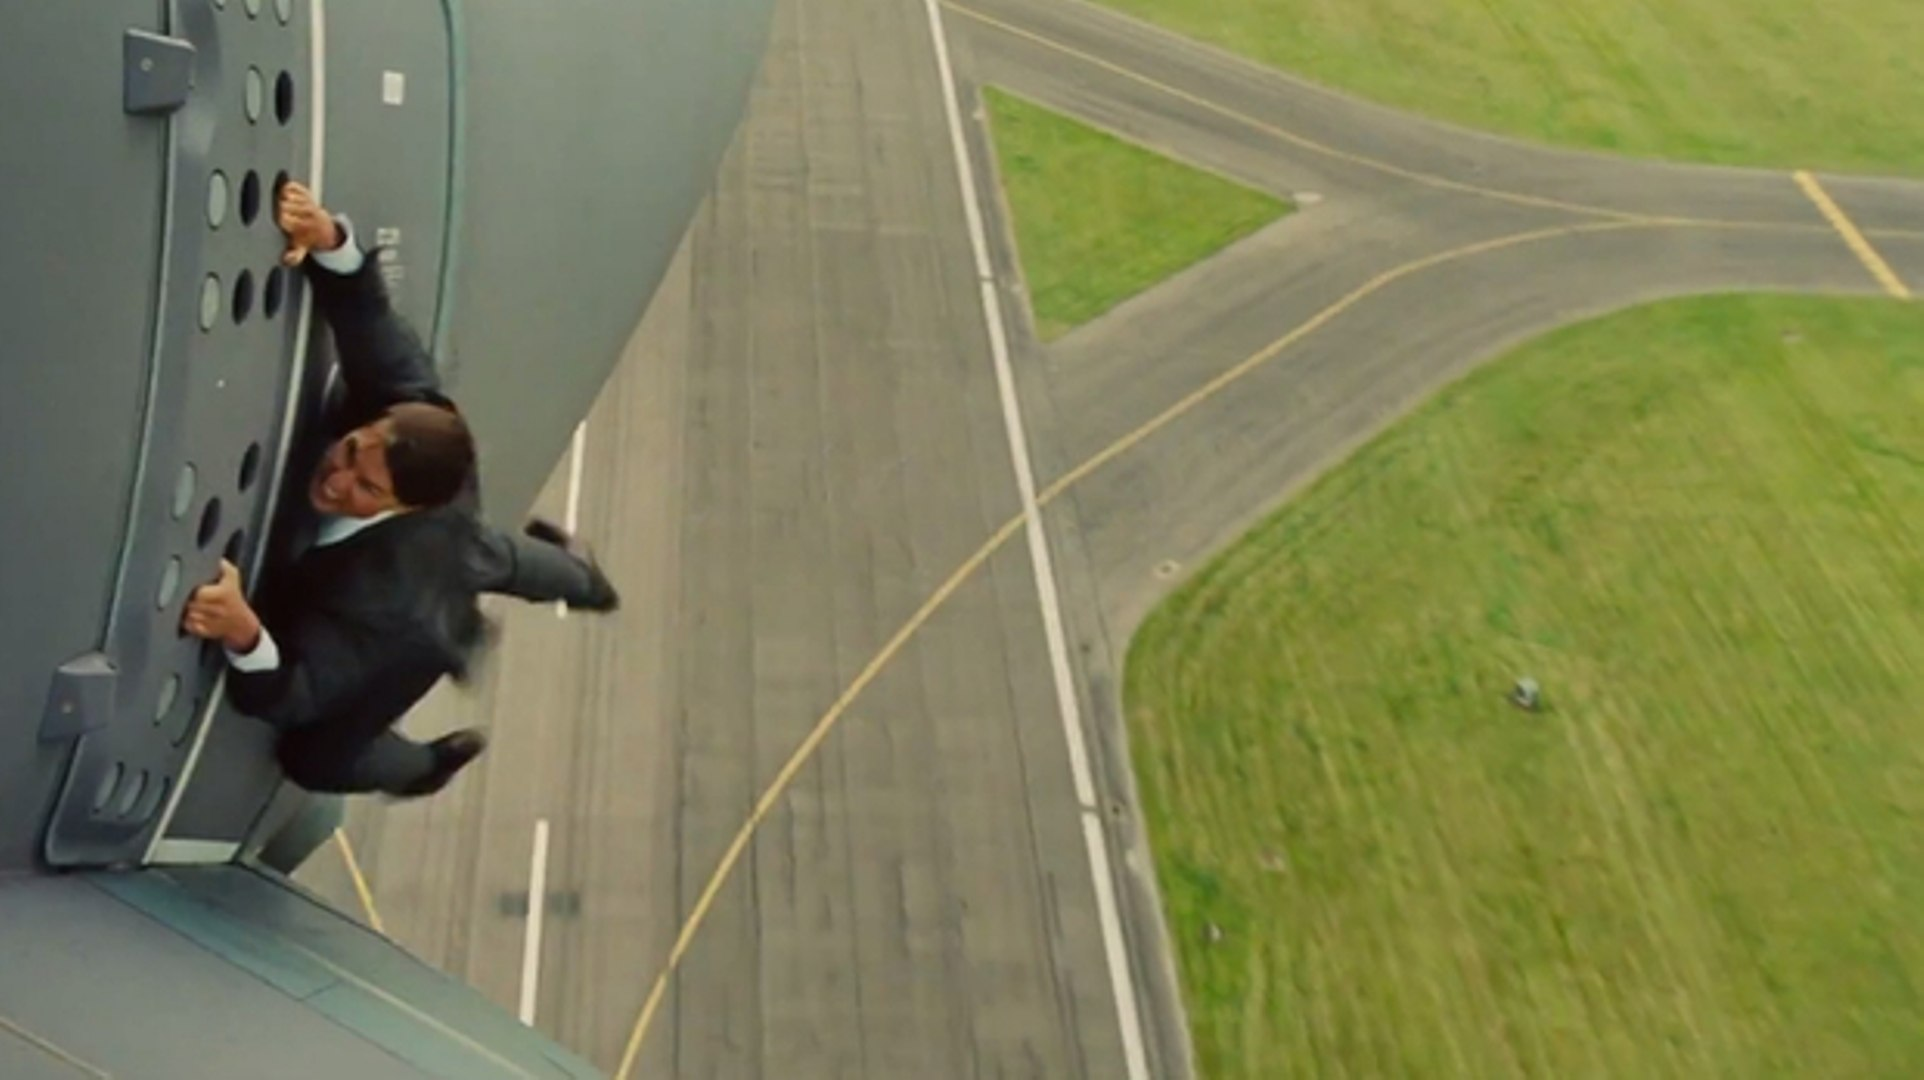 Tom Cruise clinging to the outside of an airplane in Mission: Impossible - Rogue Nation (2015)